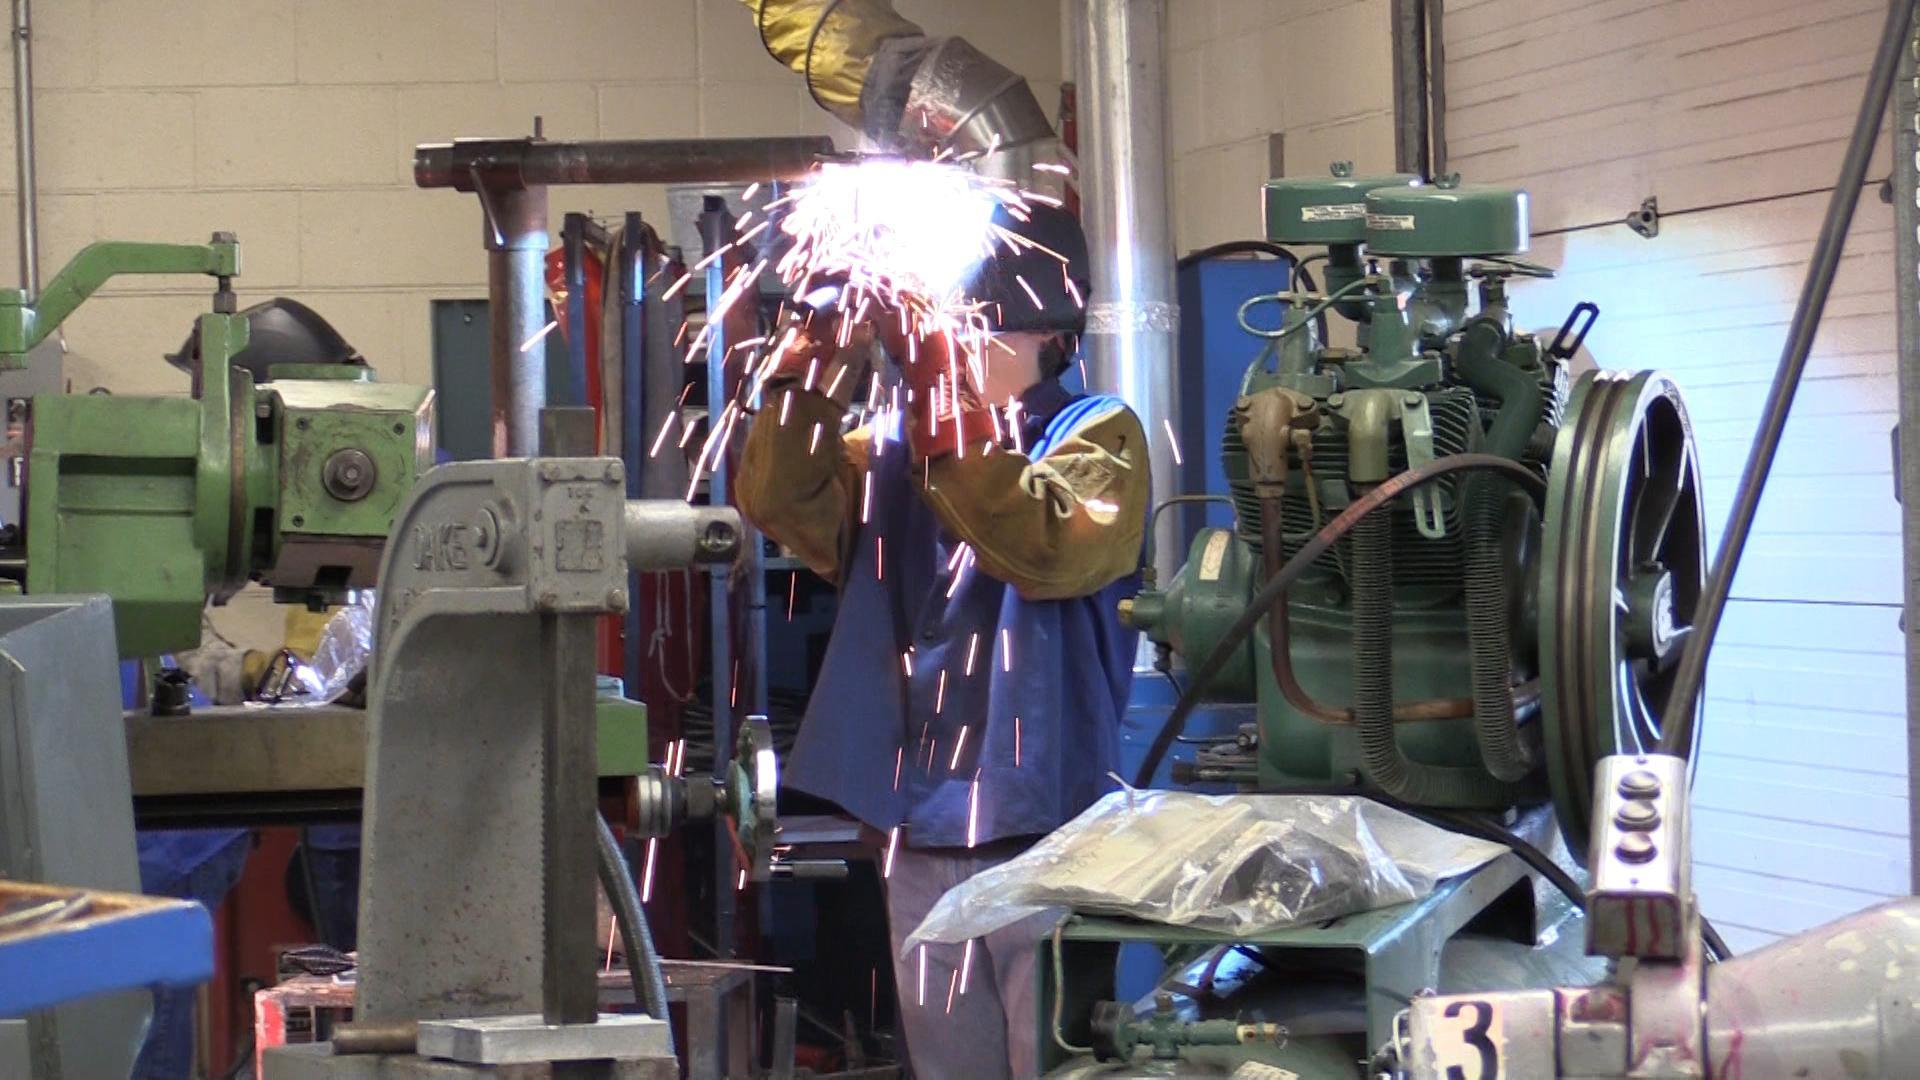 Student welding with sparks flying